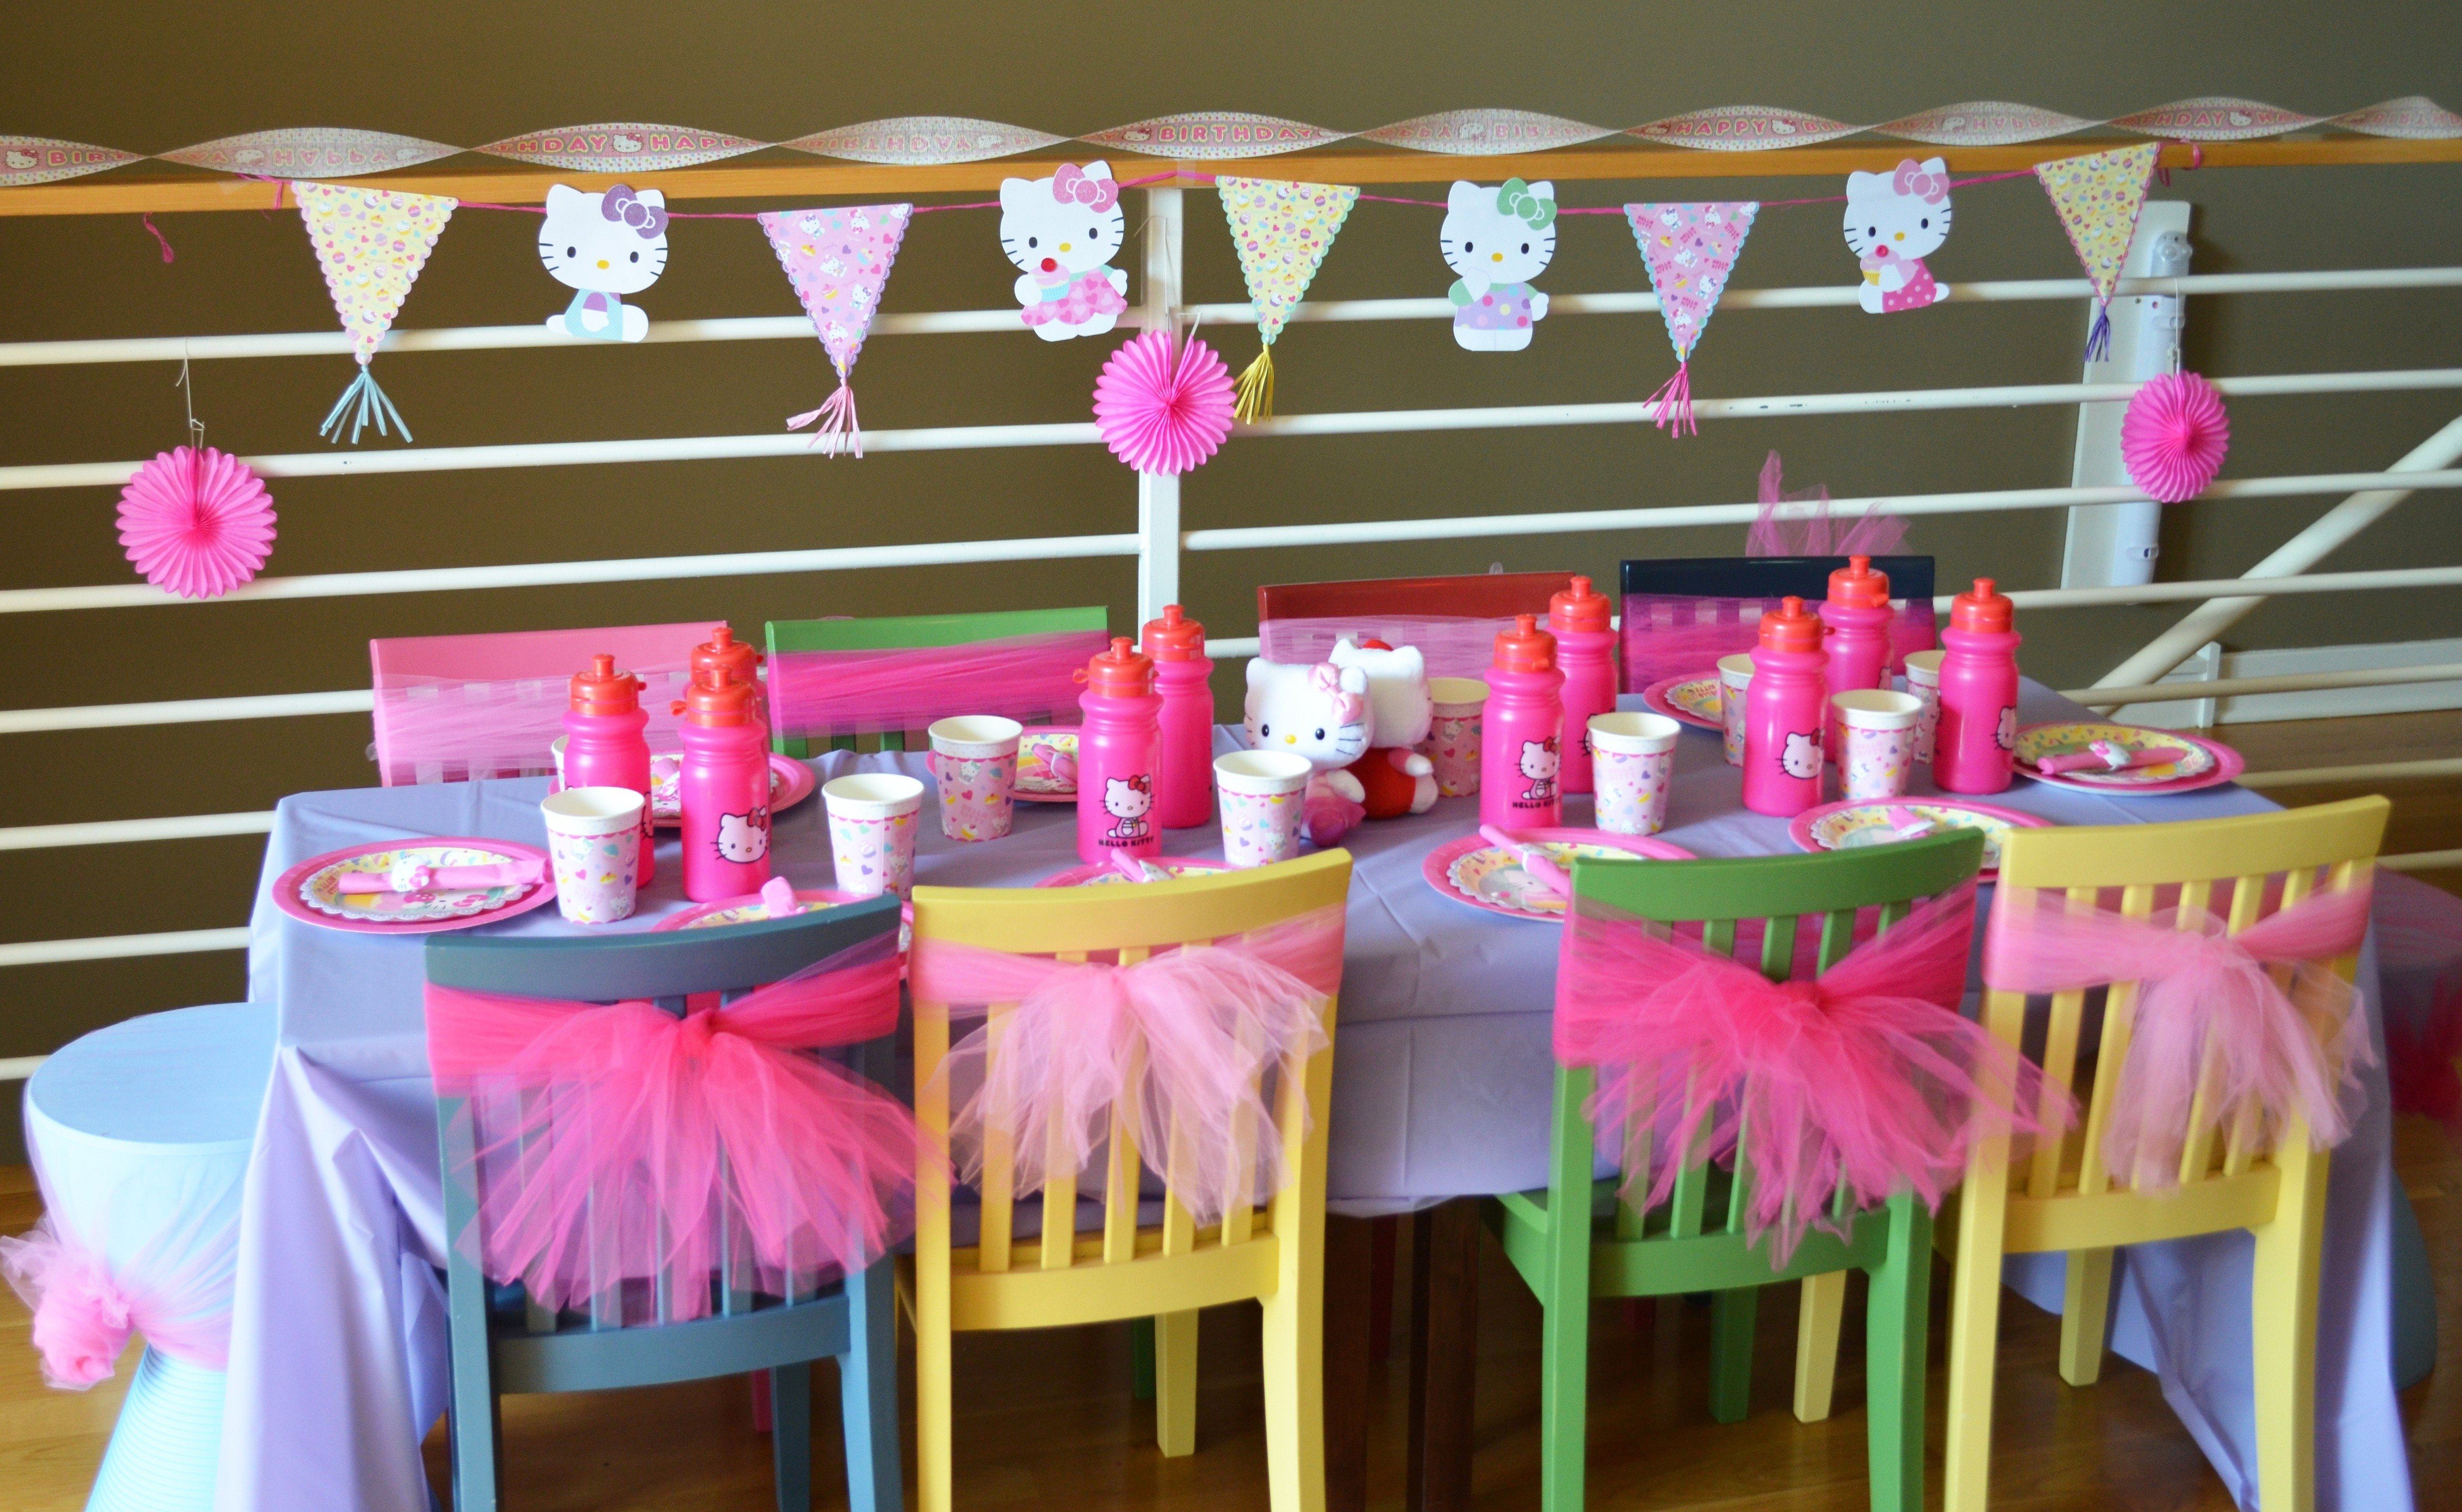 10 Beautiful Ideas For 3 Year Old Birthday Party 27 cute models regarding 3 year old birthday party that you shouldn 9 2020